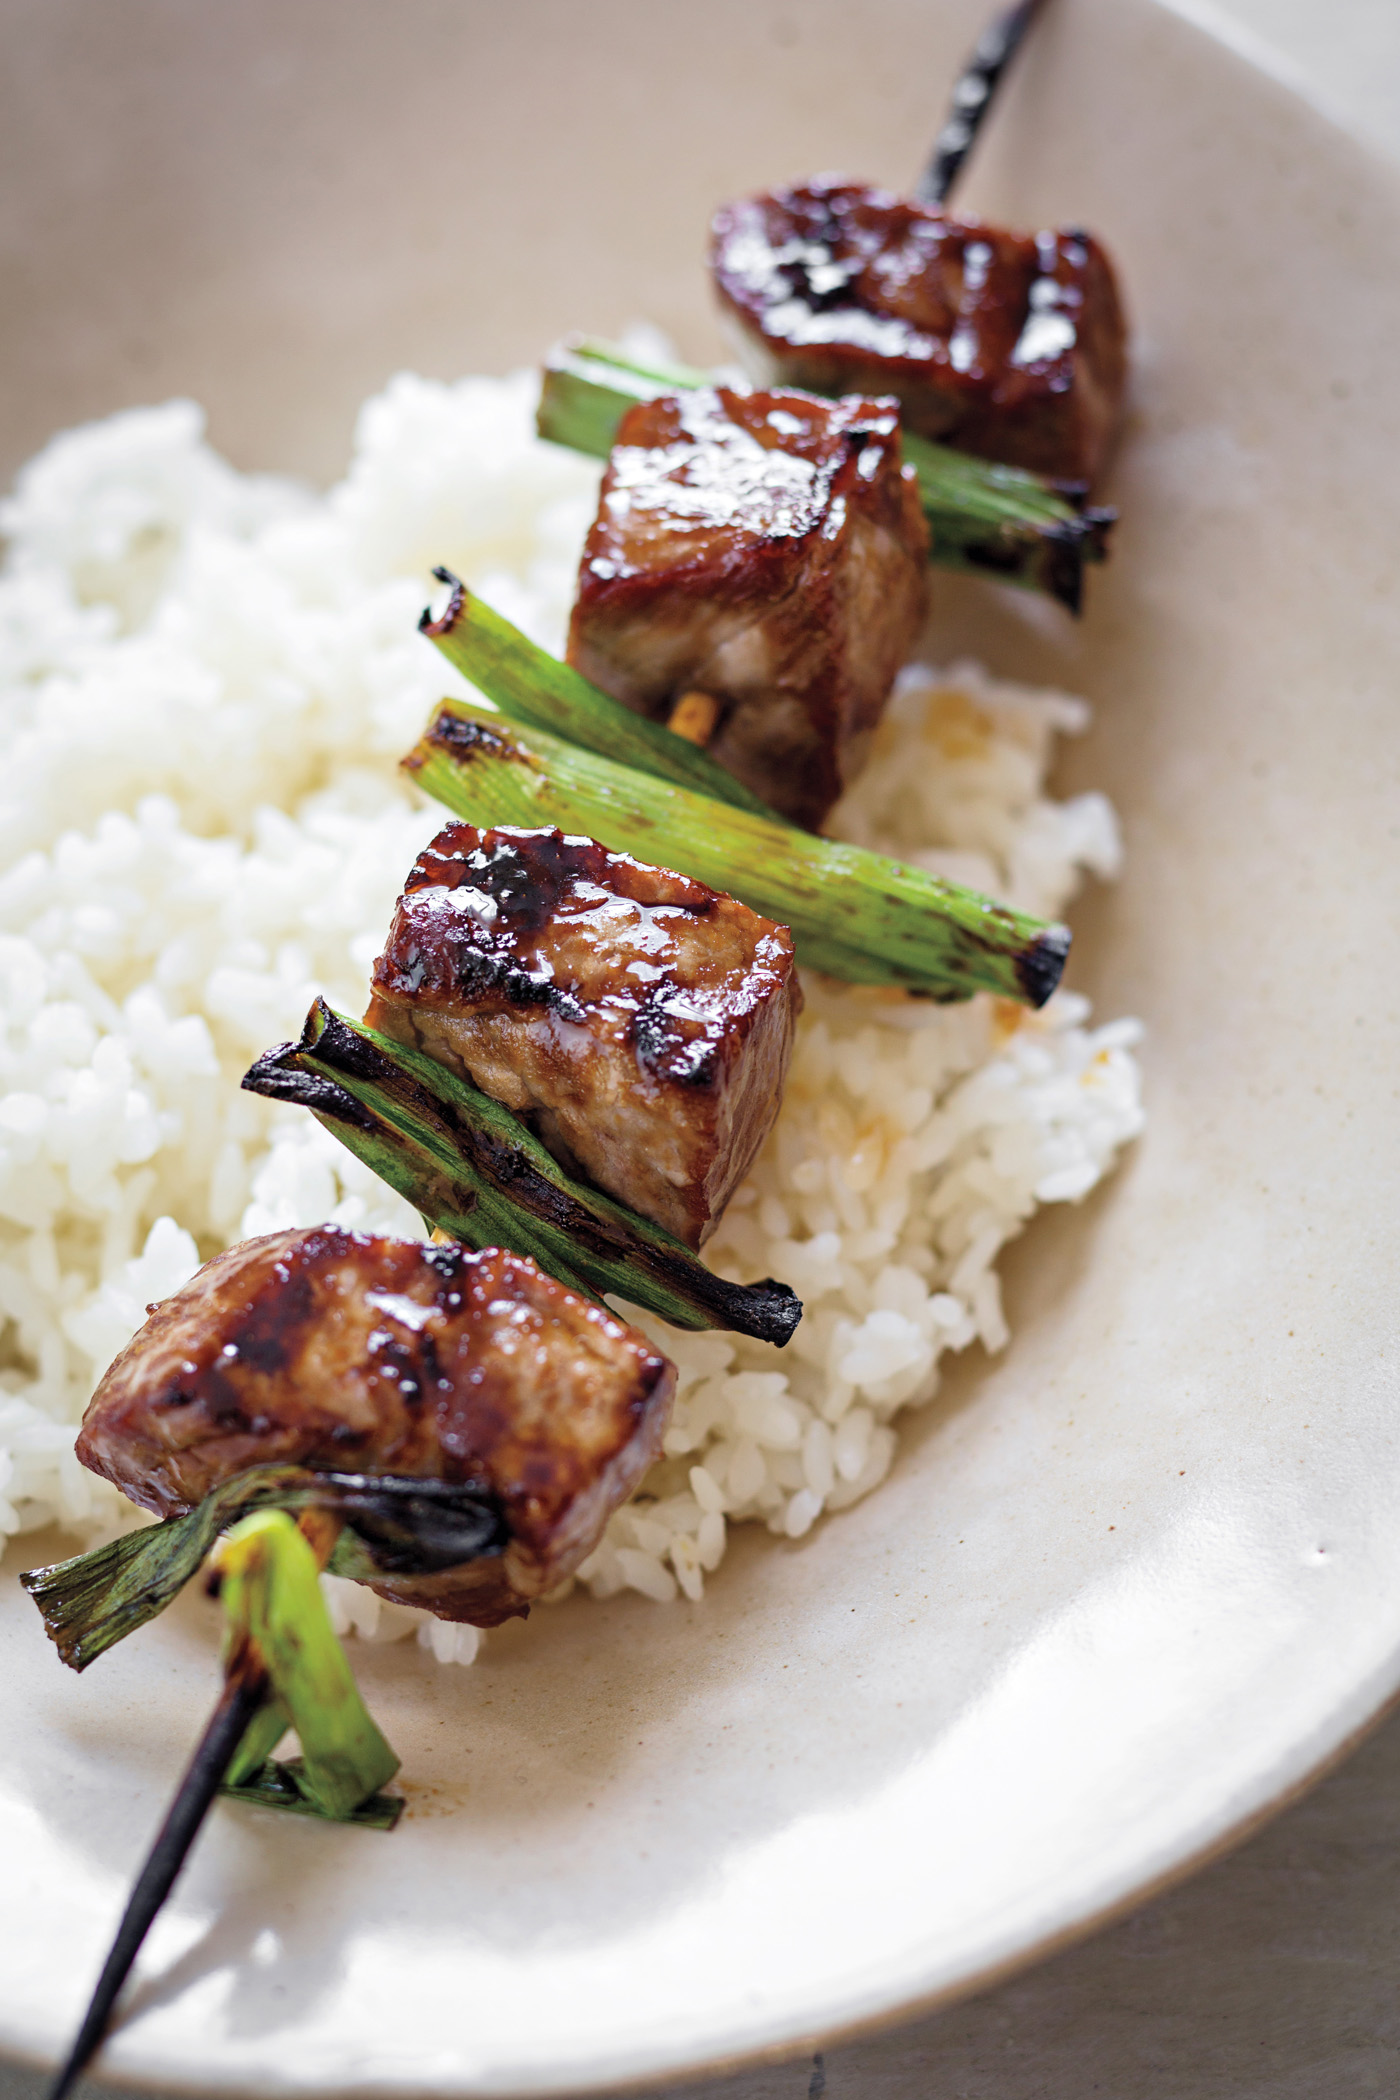 Teriyaki Sauce recipe from The Dinner Plan cookbook by Caroline Campion and Kathy Brennan | featured at Cool Mom Eats (Photos by Maura McEvoy)